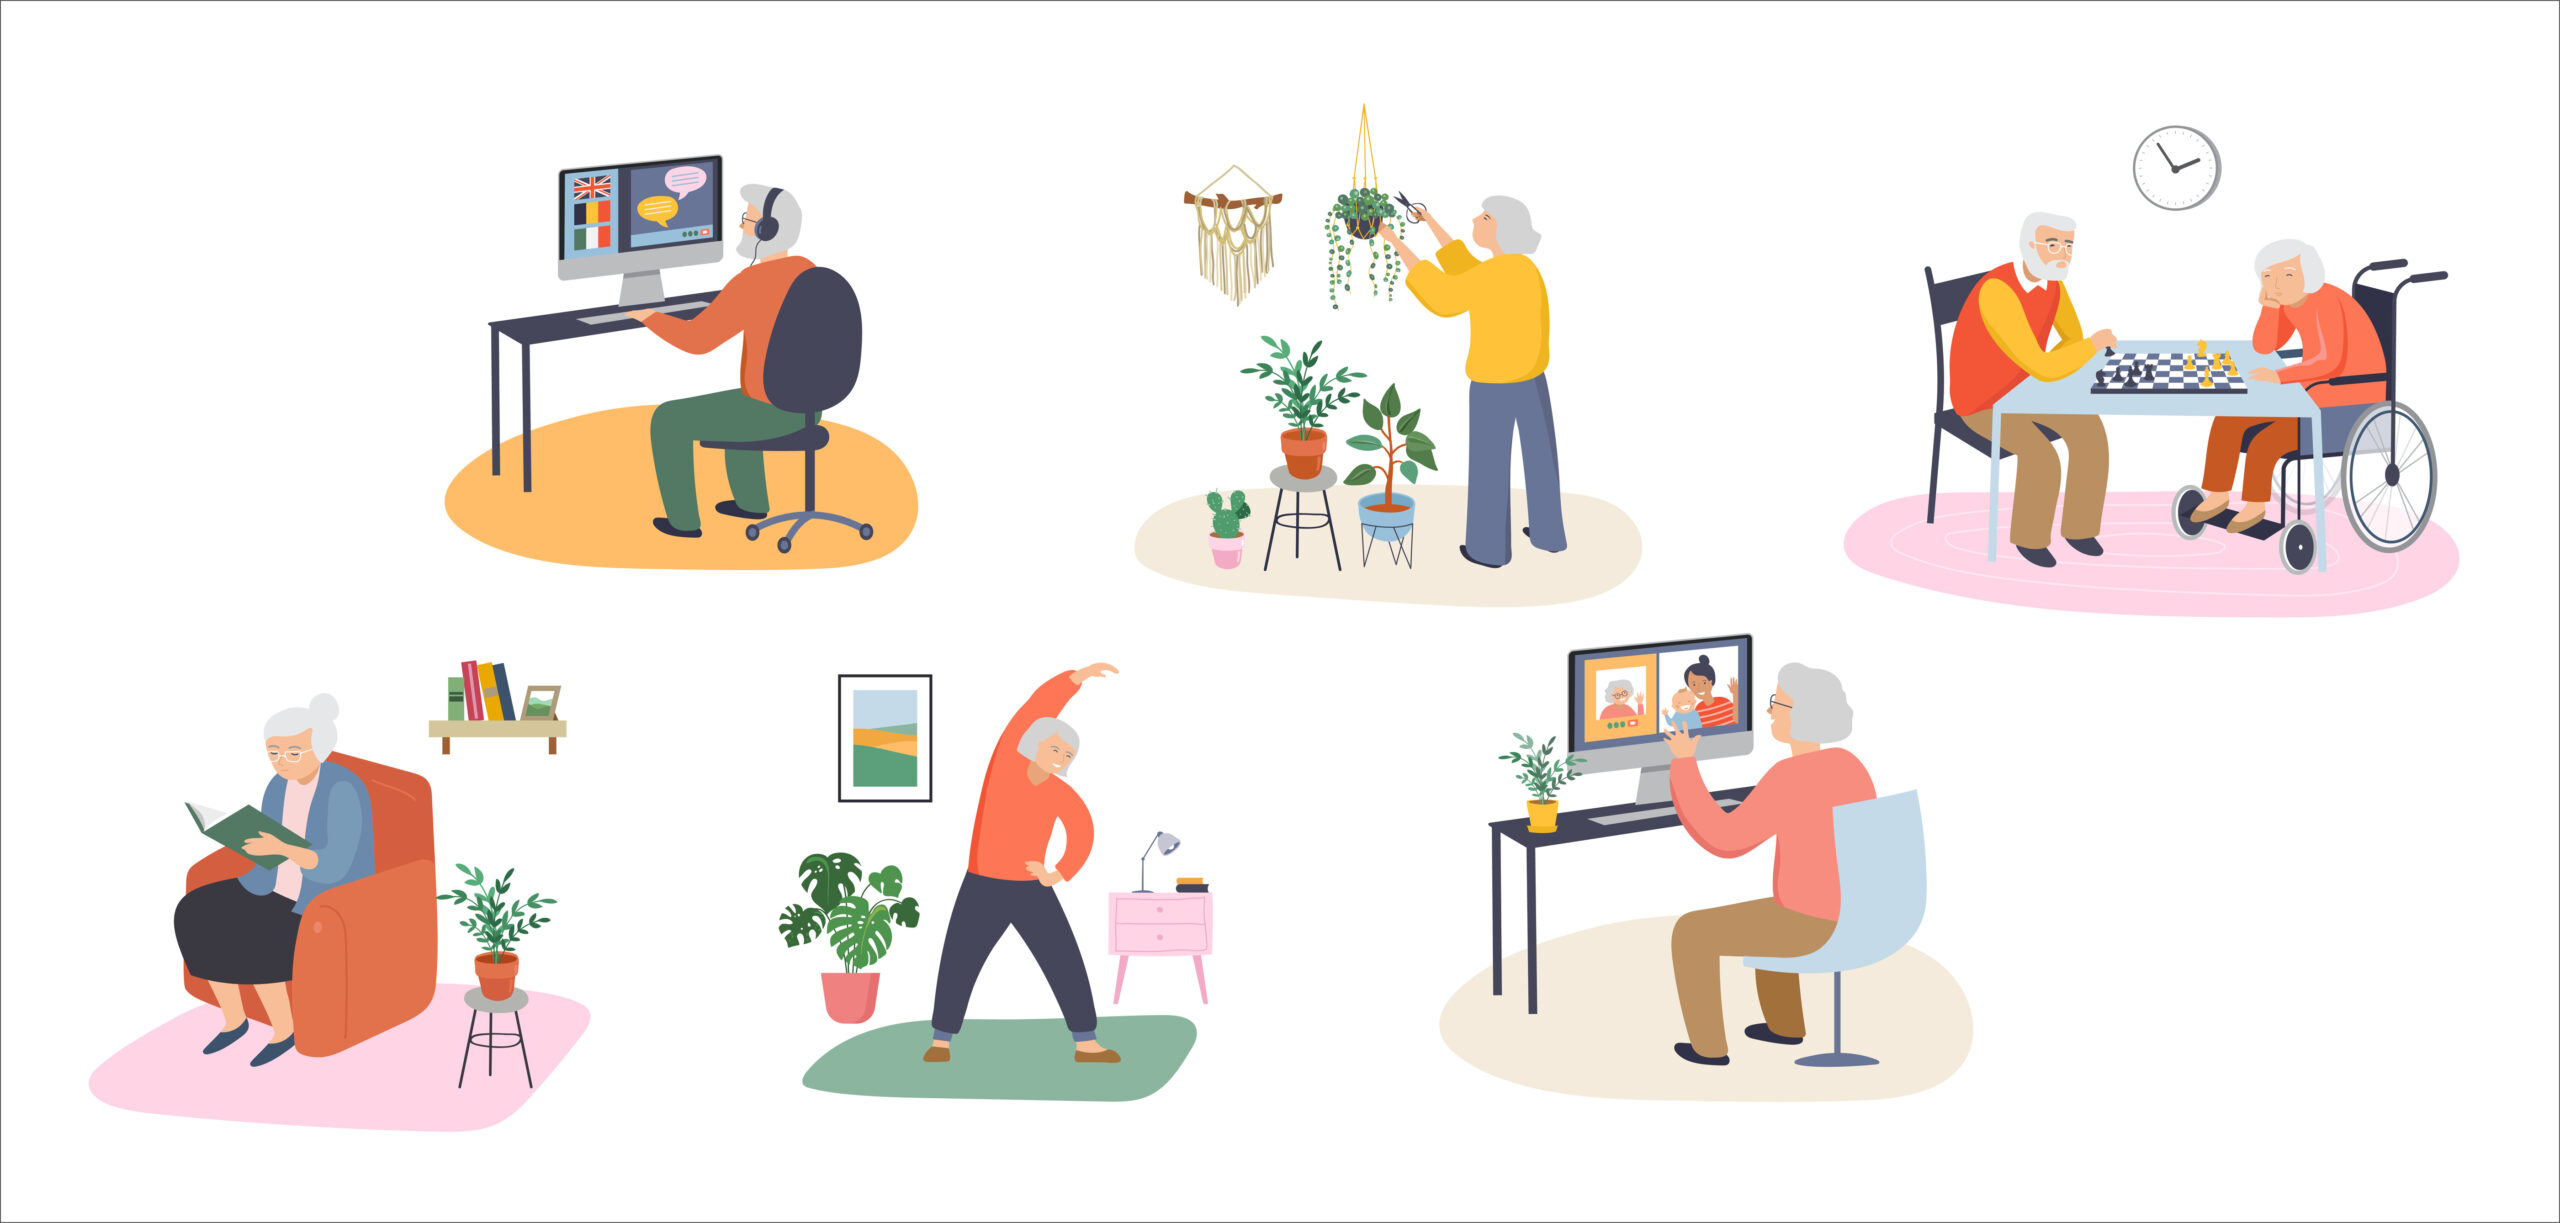 Activities of Daily Living for Seniors